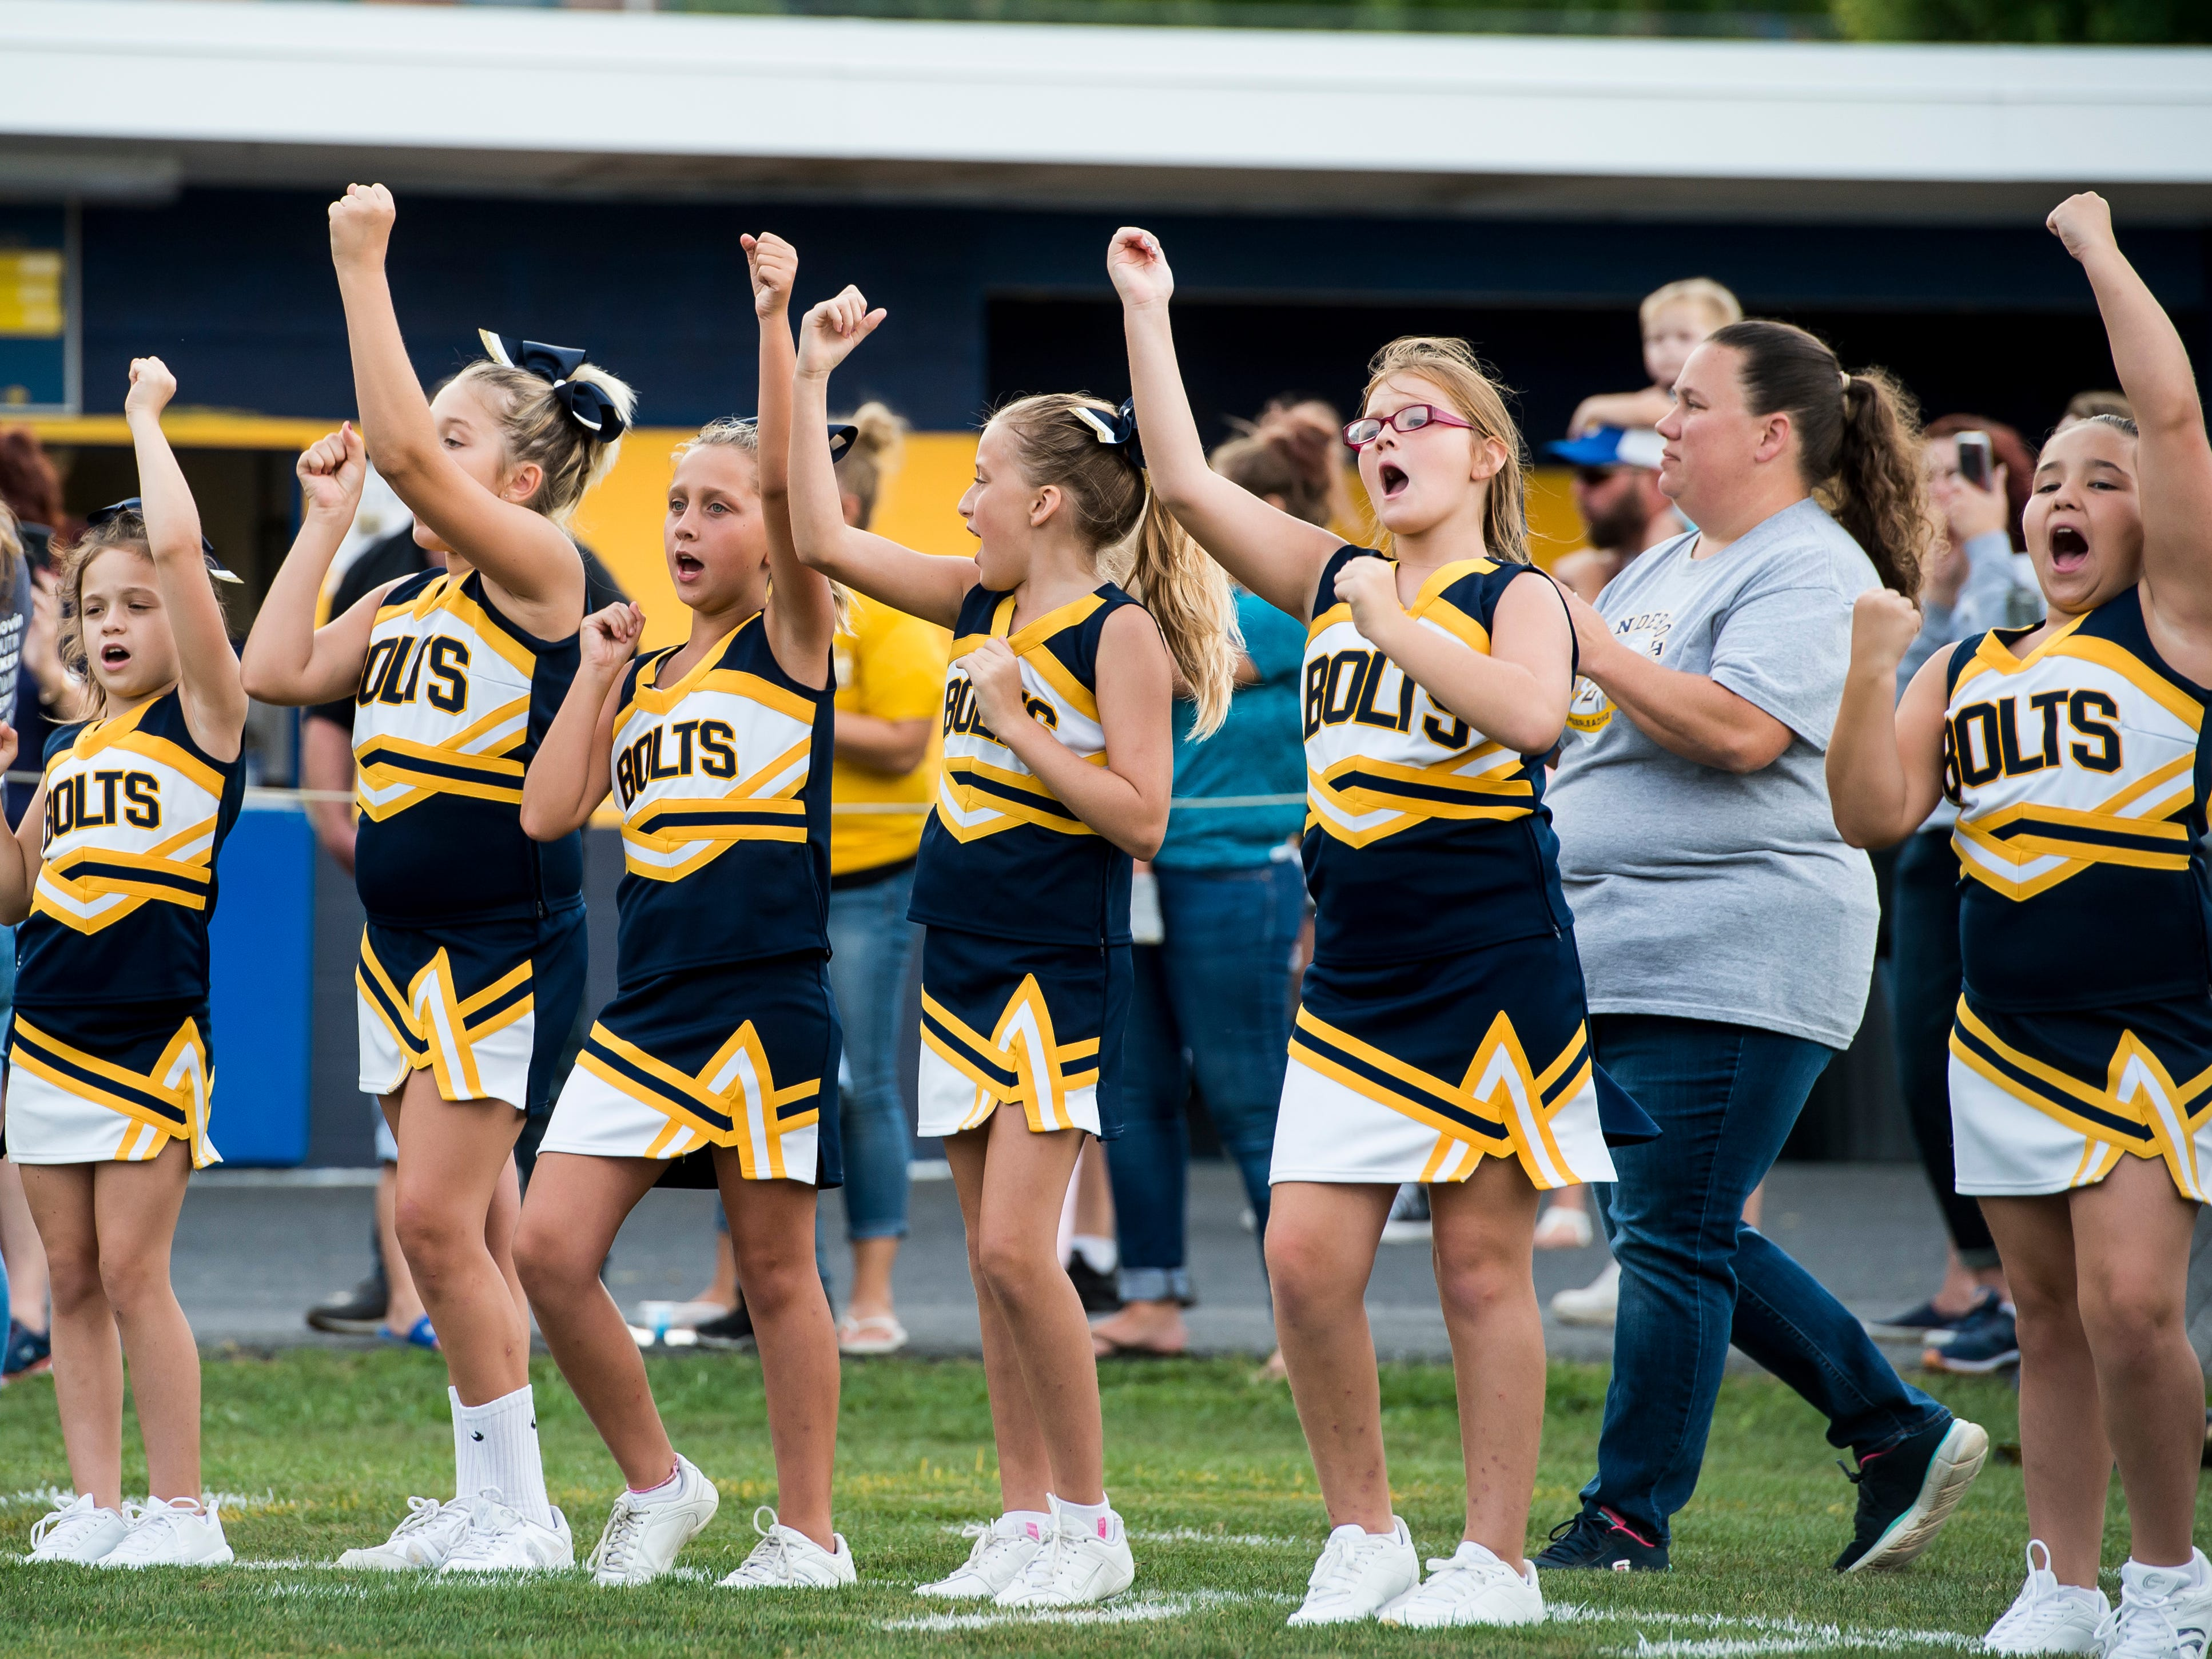 Littlestown cheerleaders make some noise for the Bolts before a game against Susquehannock on Friday, August 31, 2018. The Bolts beat the Warriors 29-14.